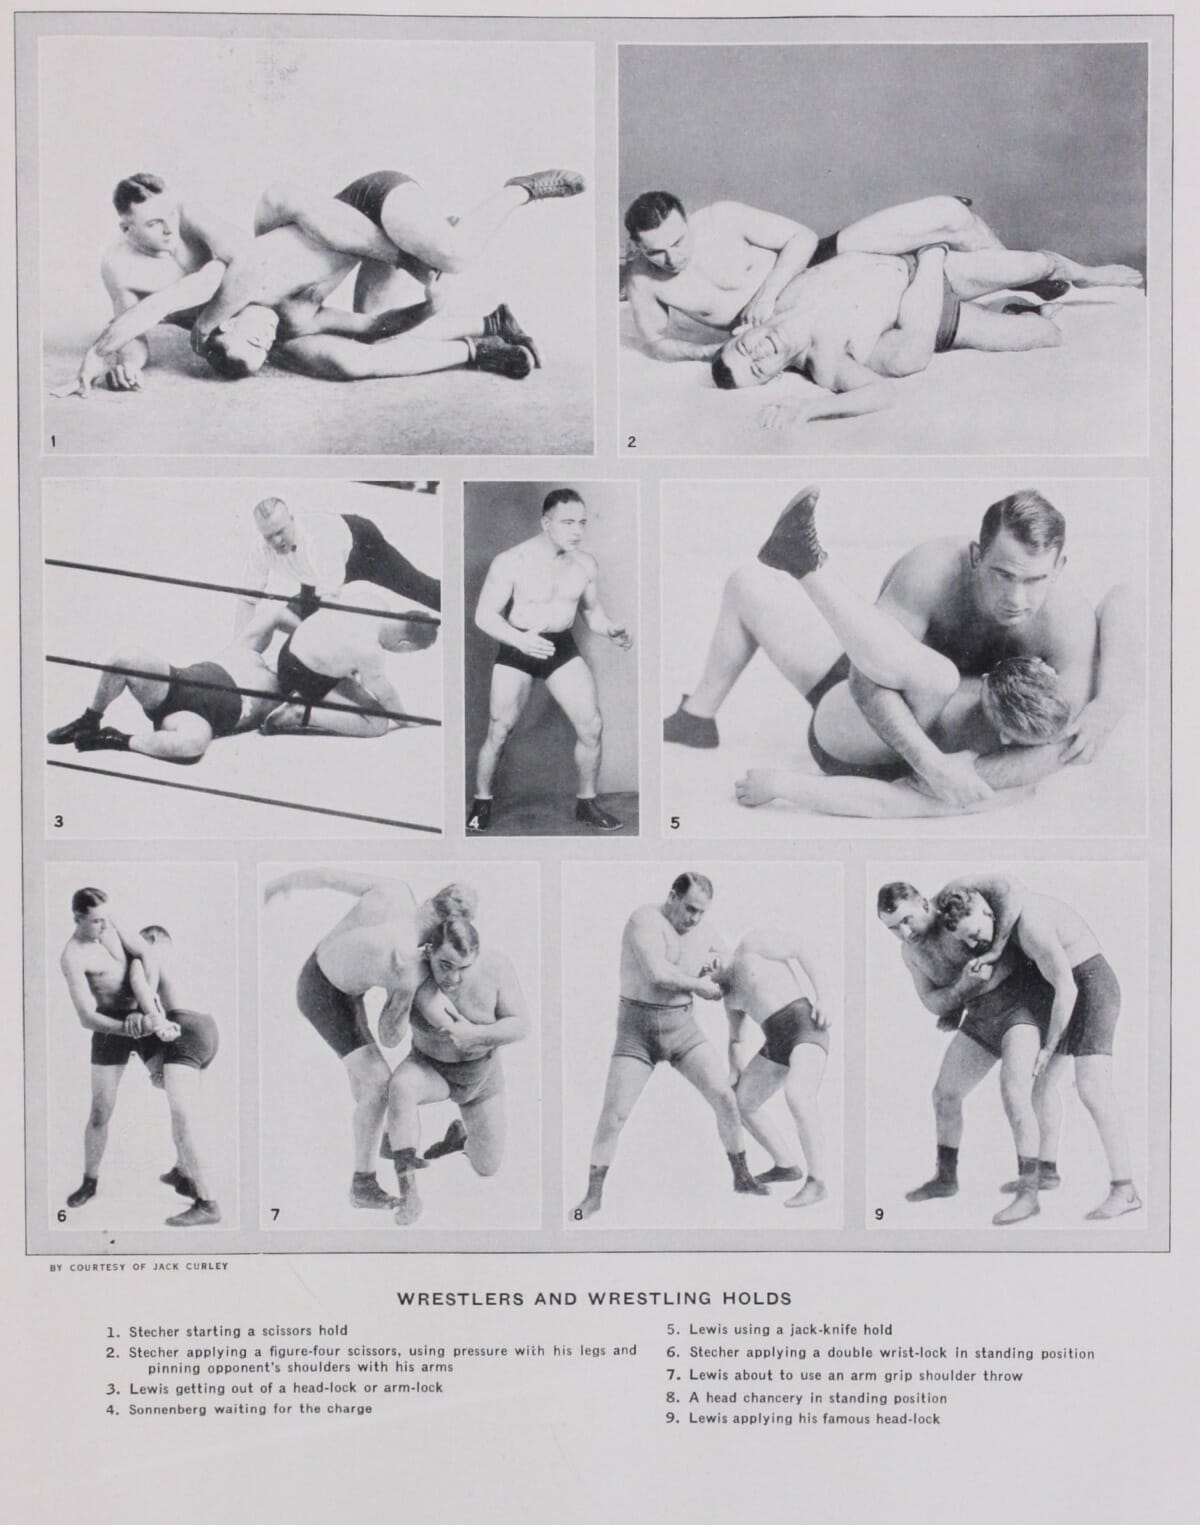 Pro Wrestling has roots in real combat, but quickly evolved into an exhibition to please the crowd and first and foremost- to make money. Notice the names: Ed